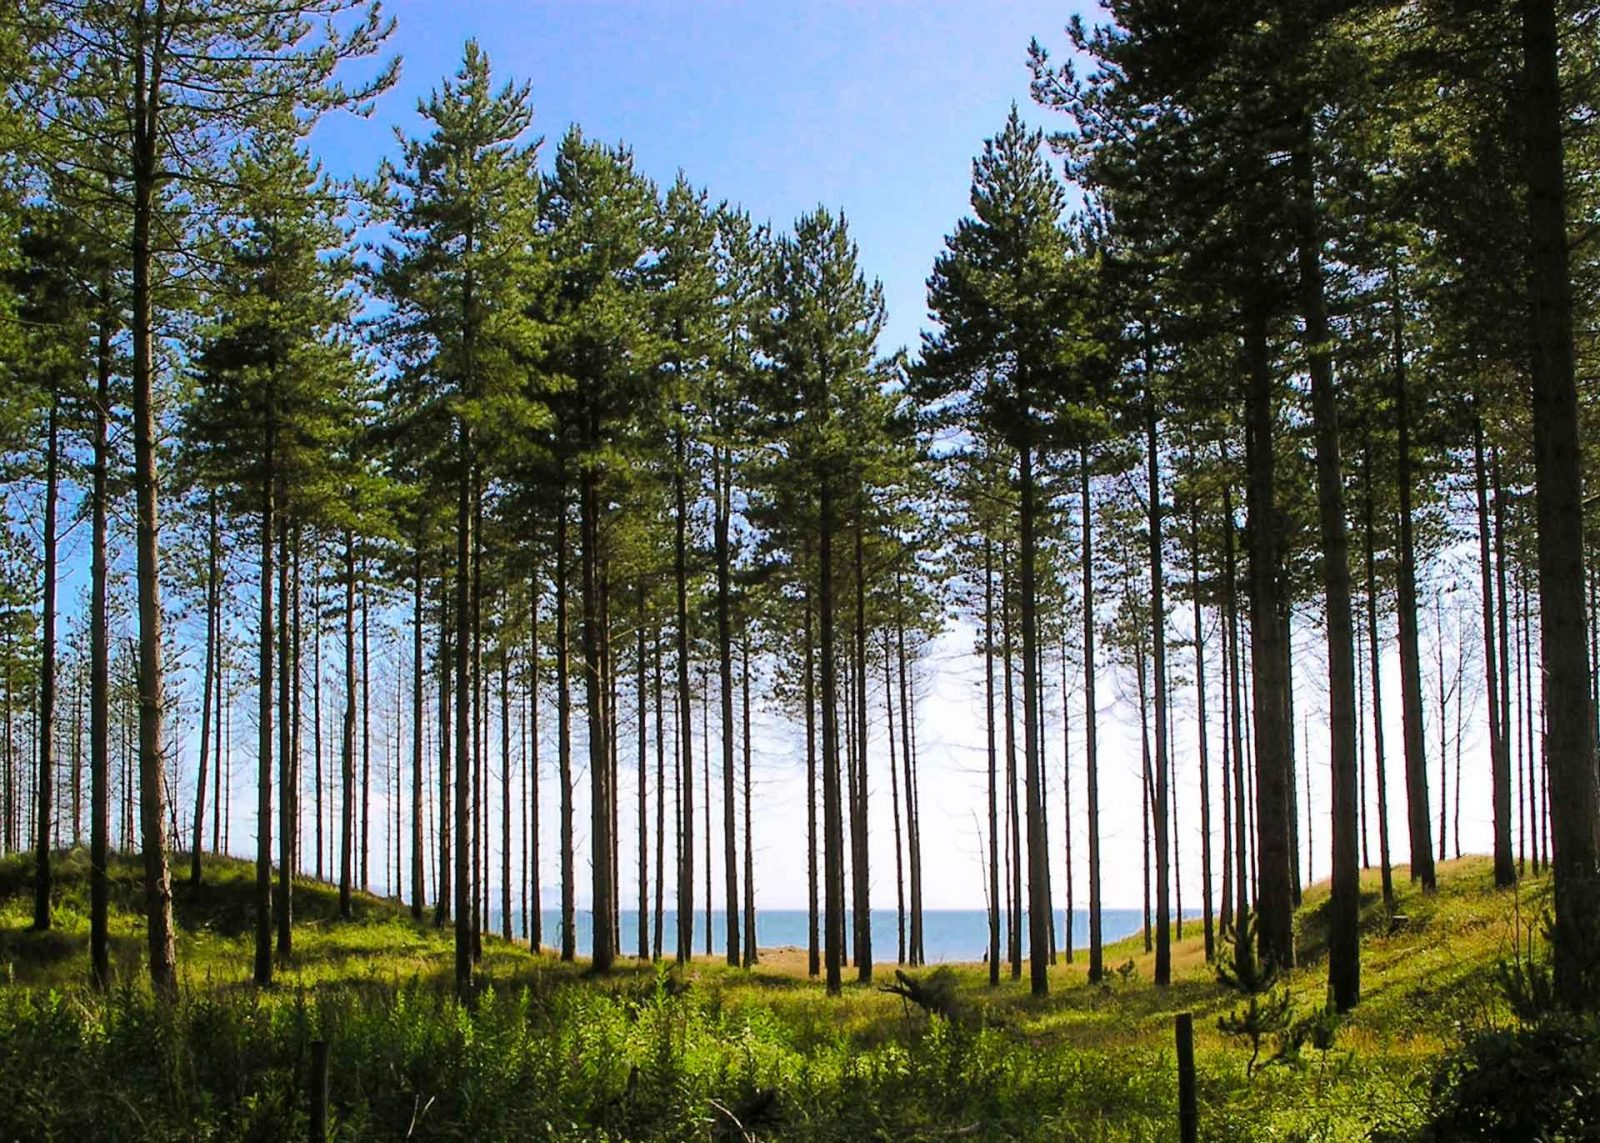 What's on my list for Thursday on Falcondale Life blog - pine trees by the ocean